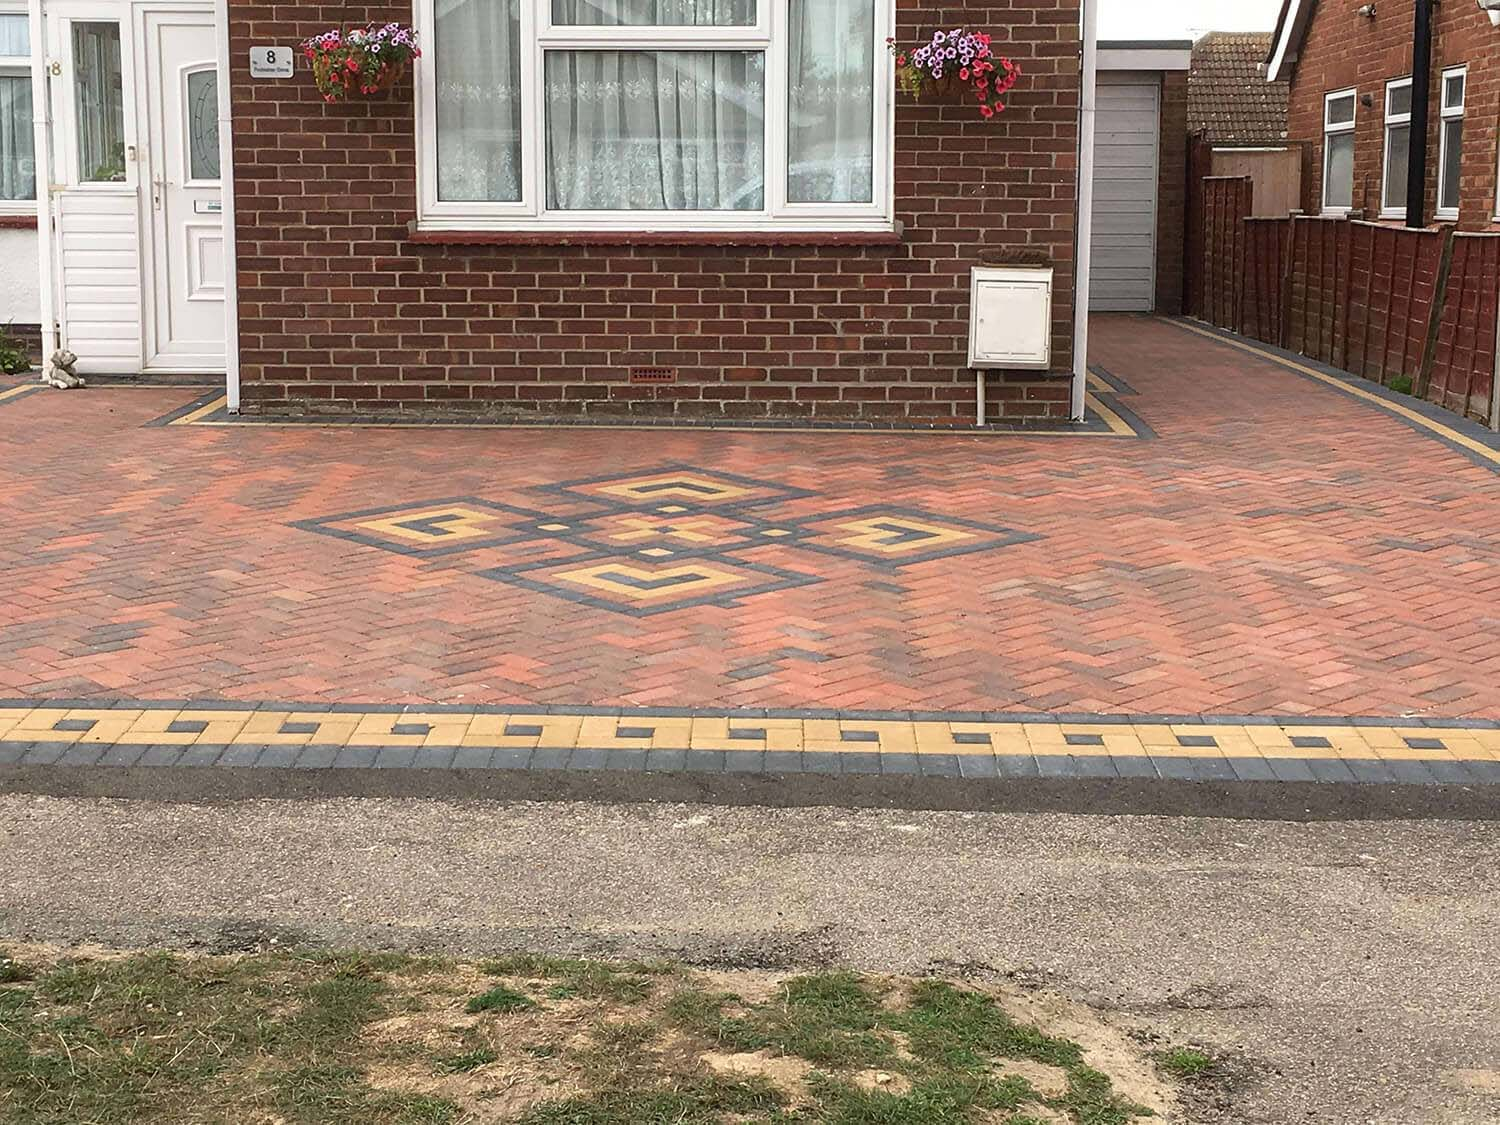 Paving Contractors Near Me in Altrincham